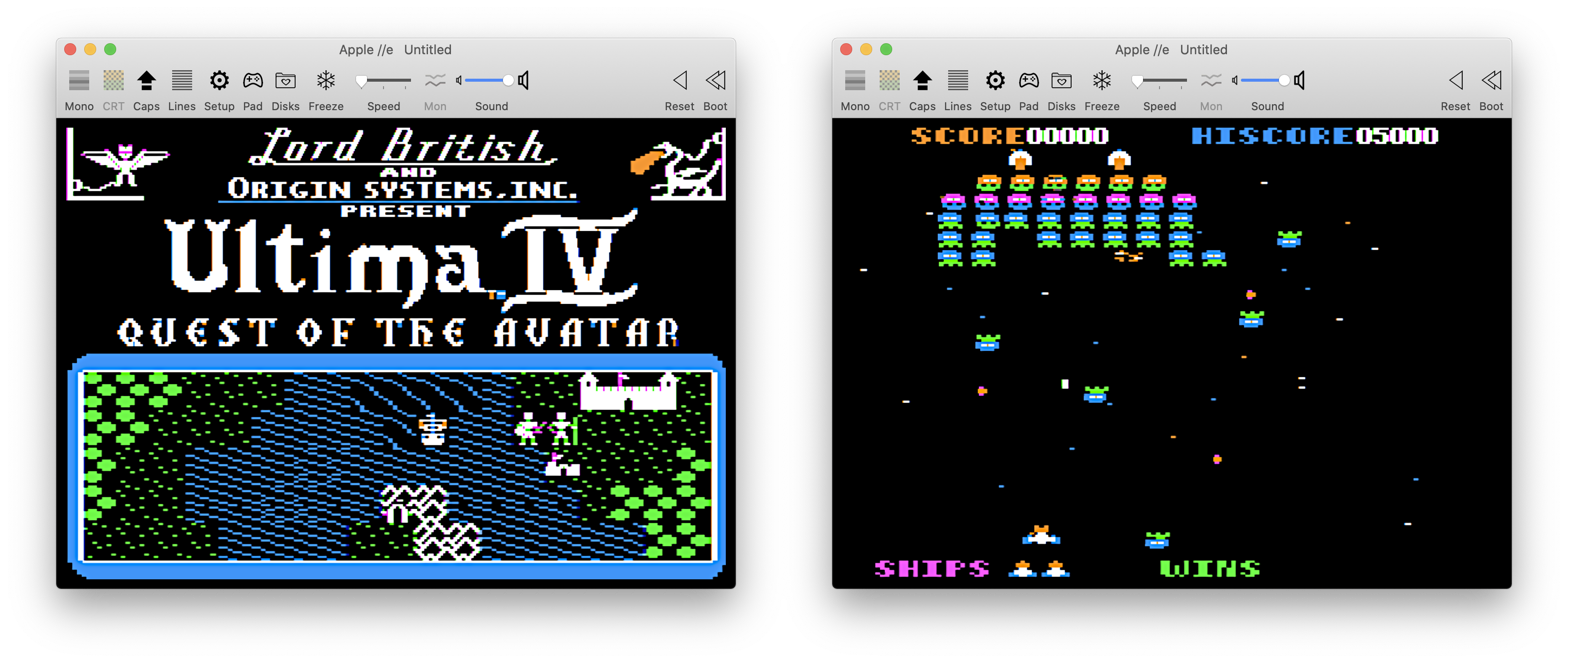 Virtual ][, the best Apple II emulator for macOS